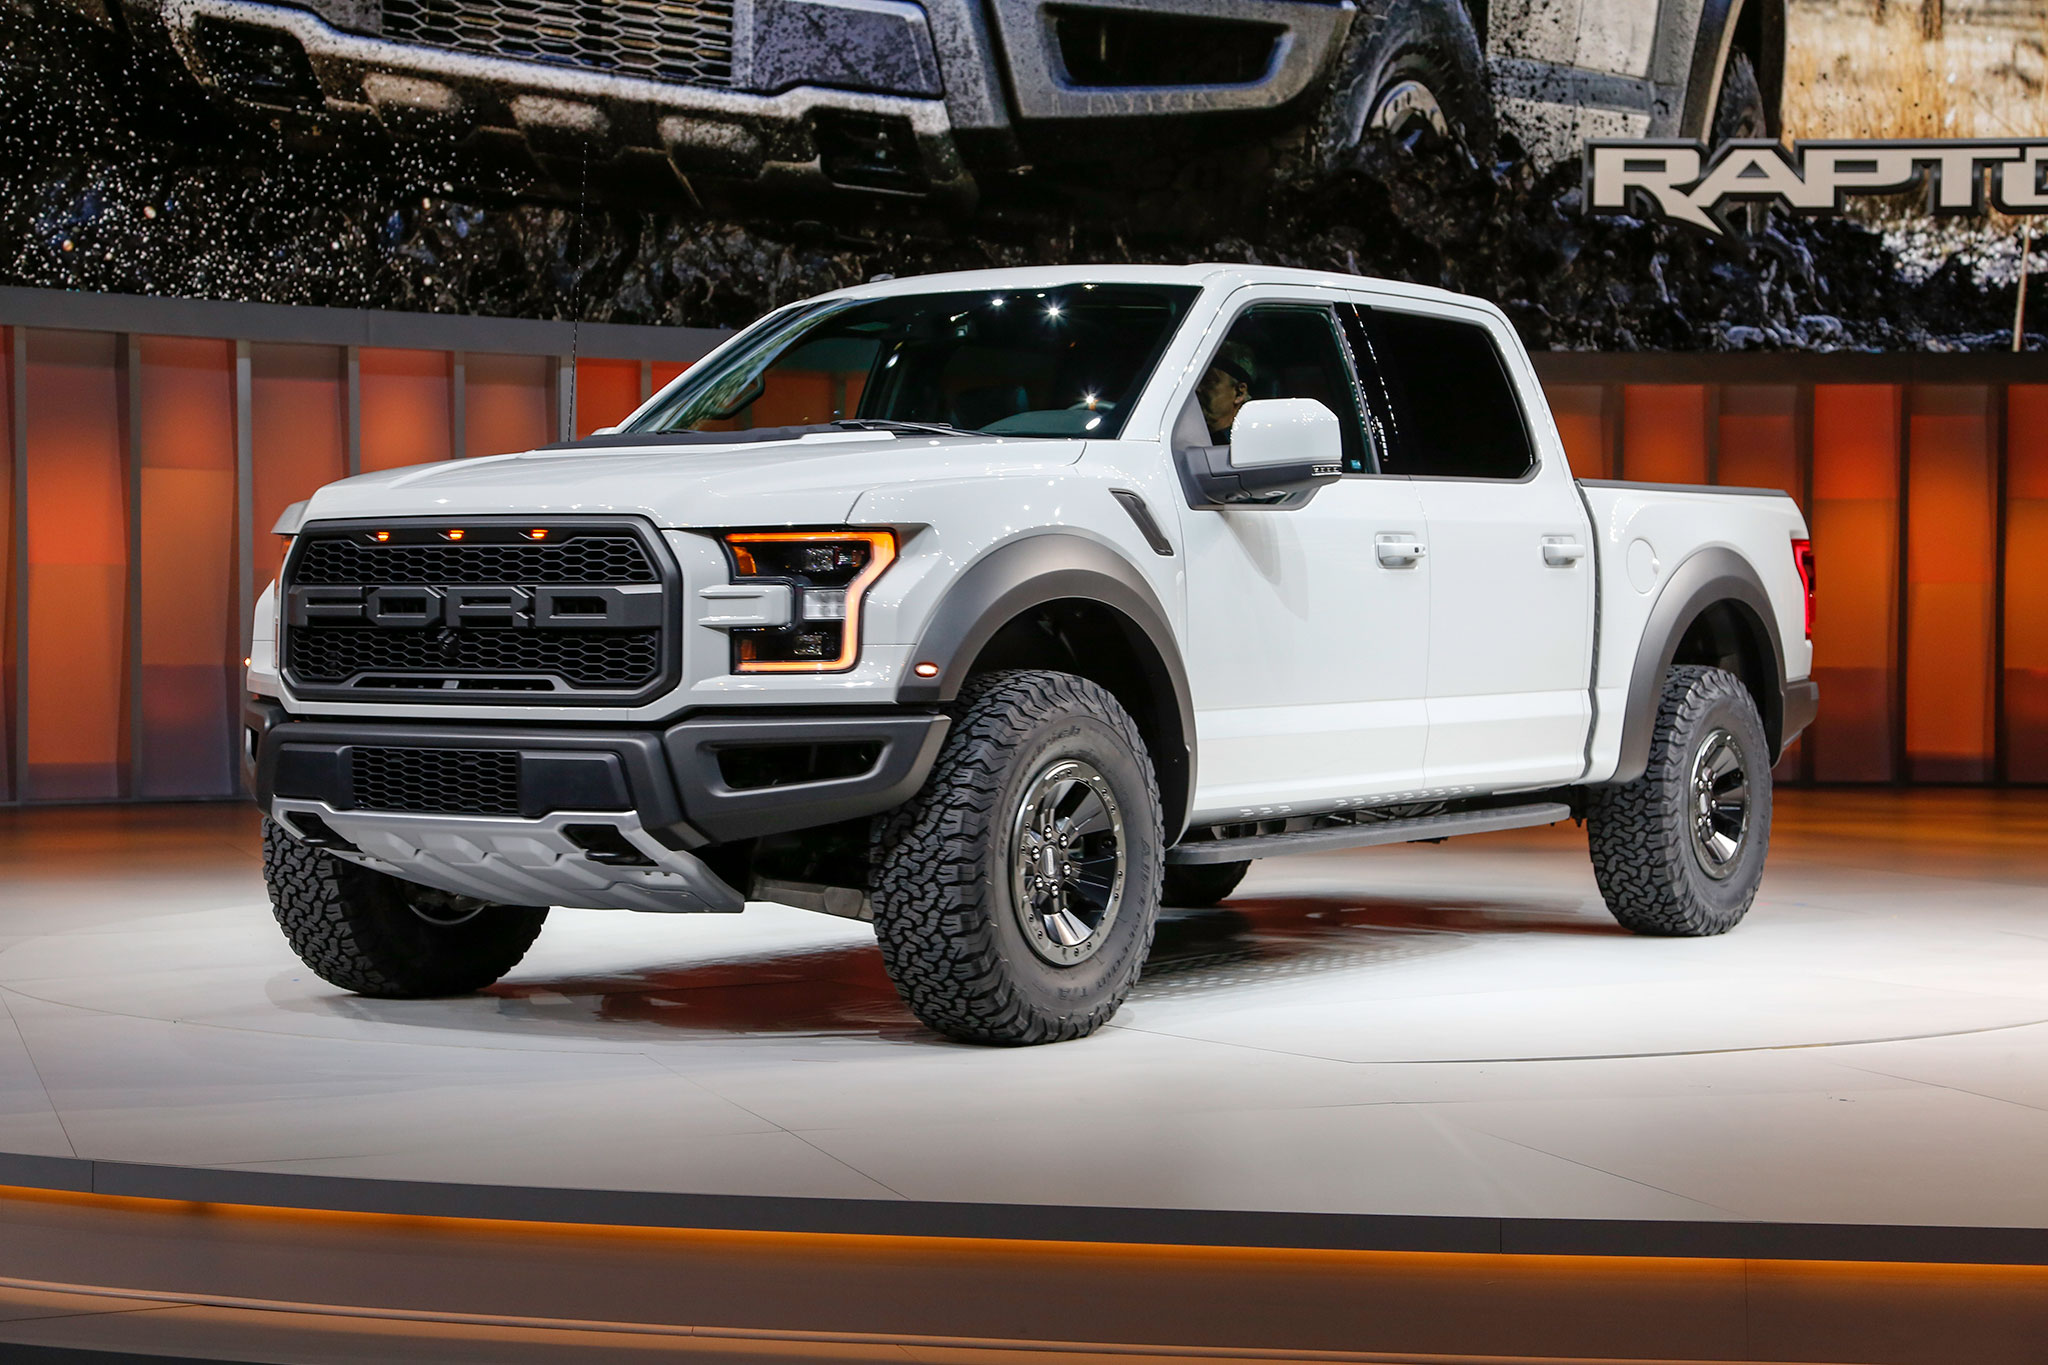 Ford Raptor Assault Program Teaches You to Use Your Raptor